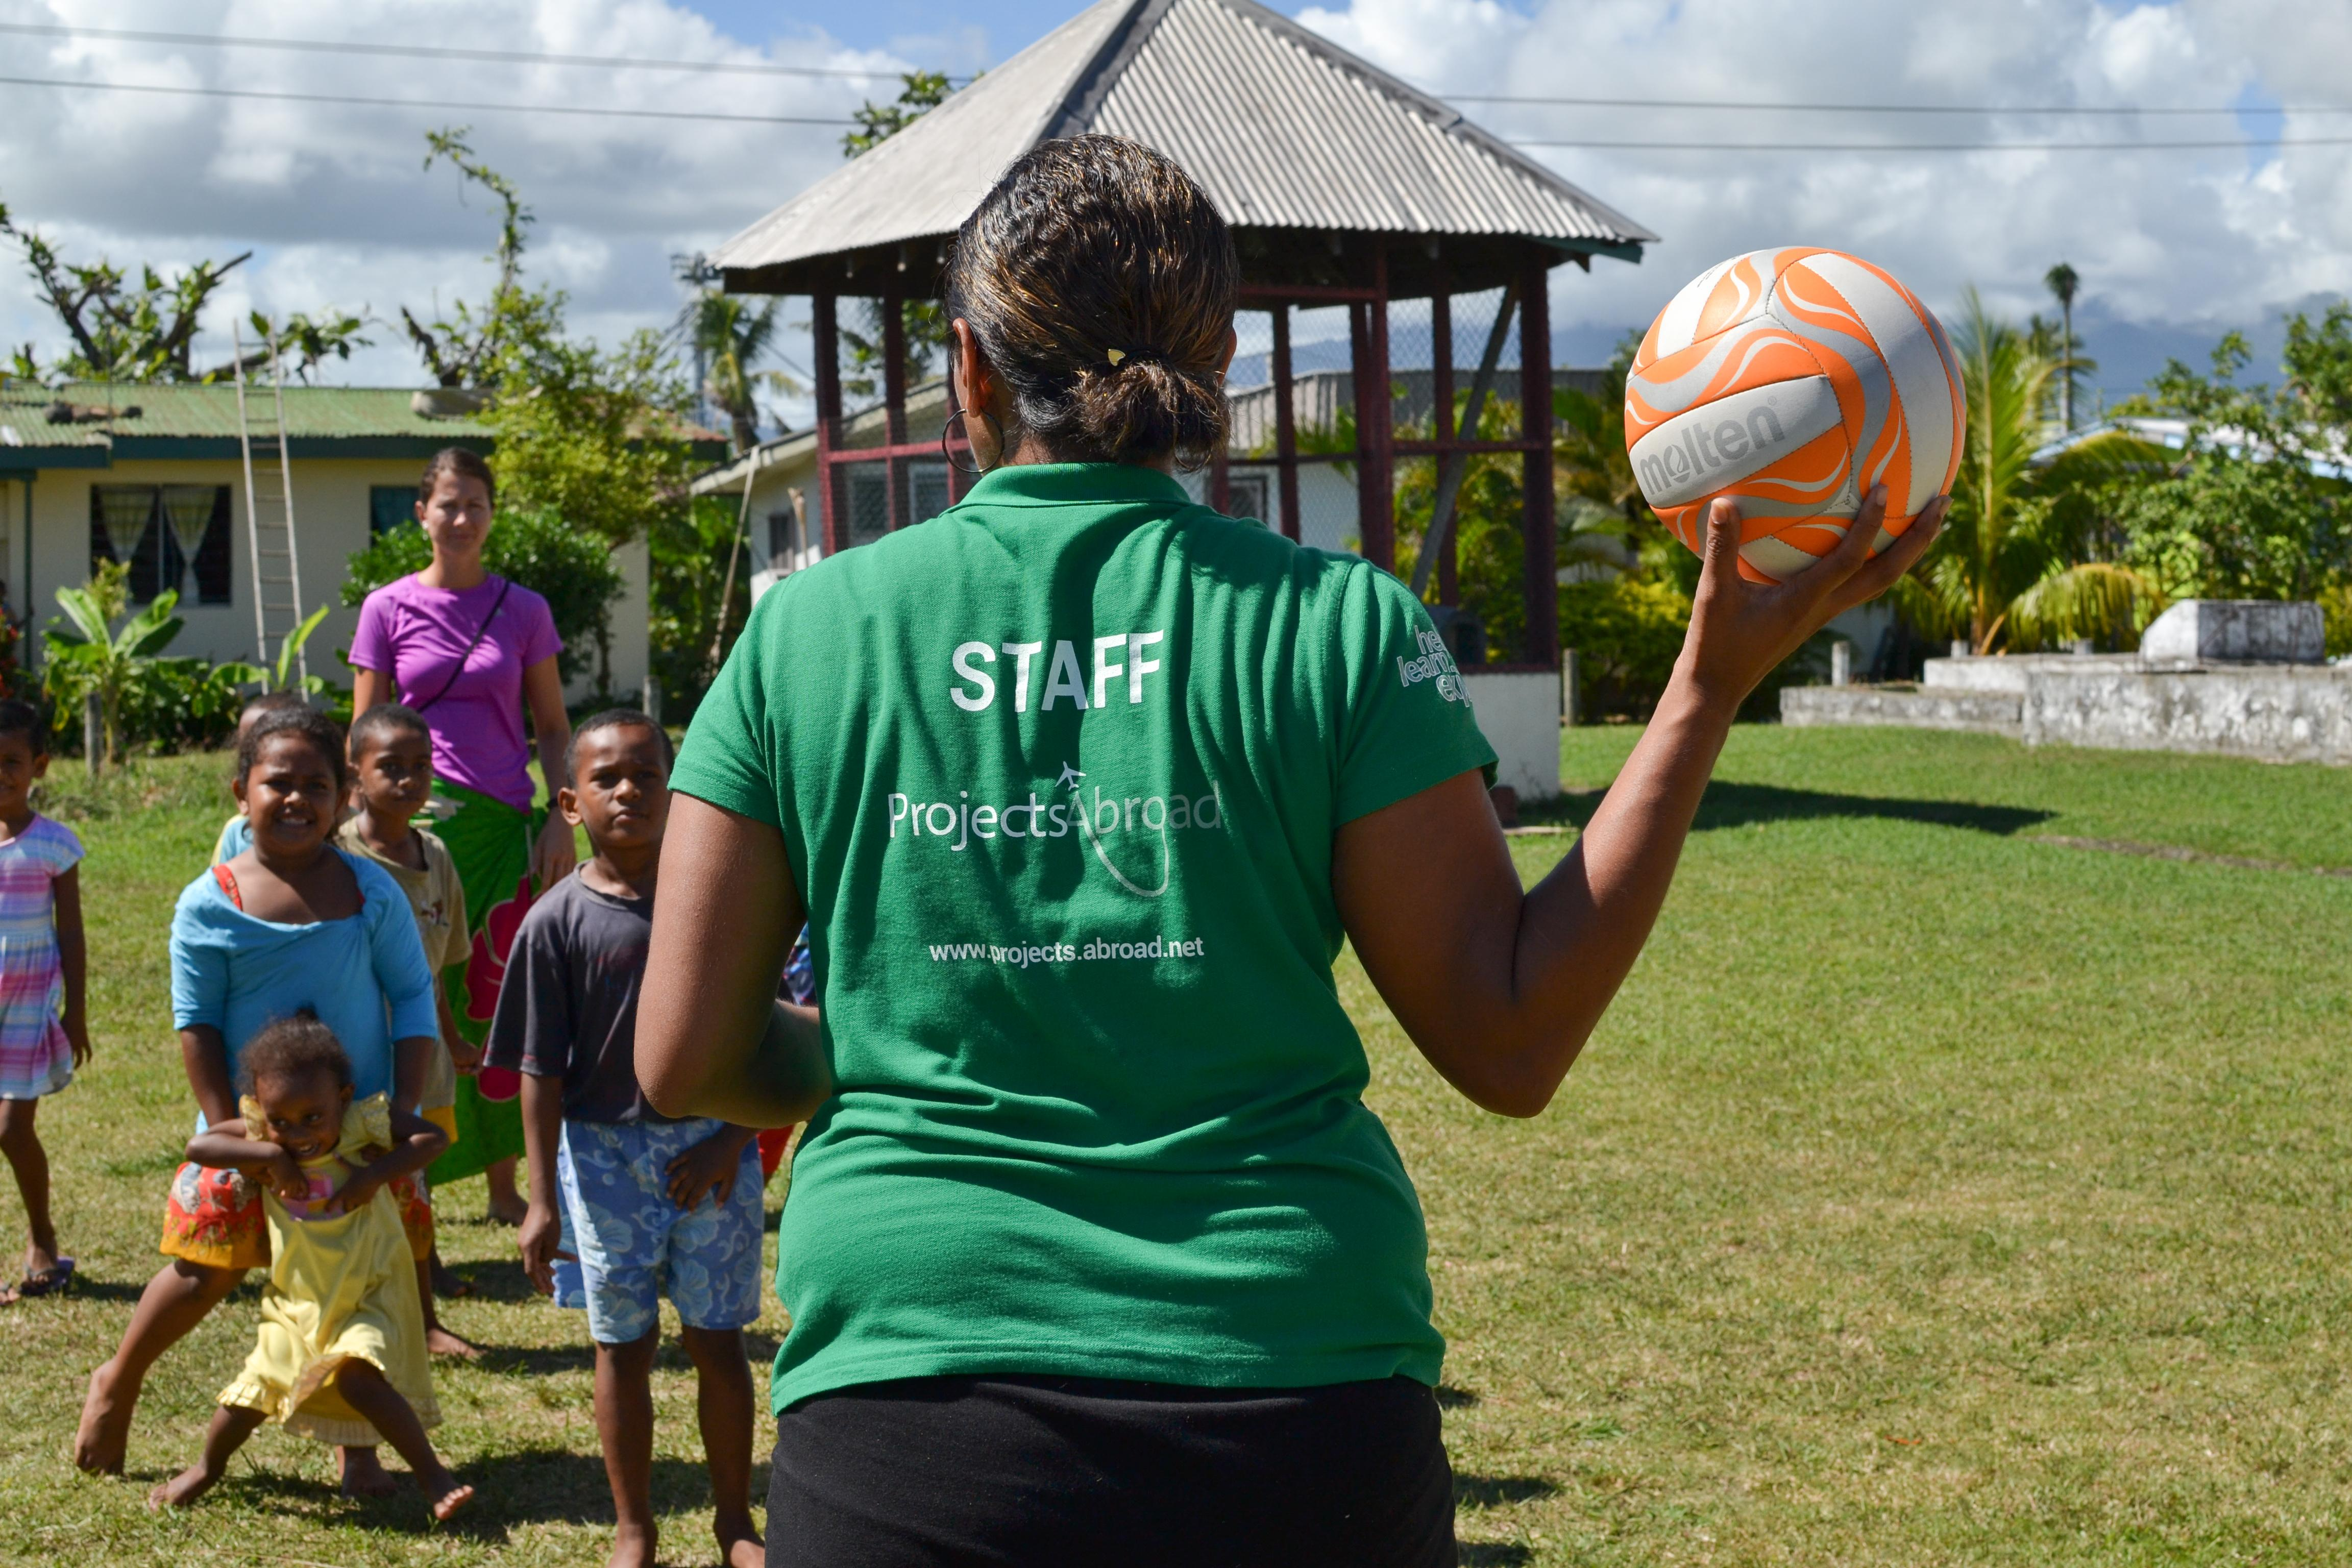 A staff member guides volunteers through a sports lesson while they are working with children abroad.